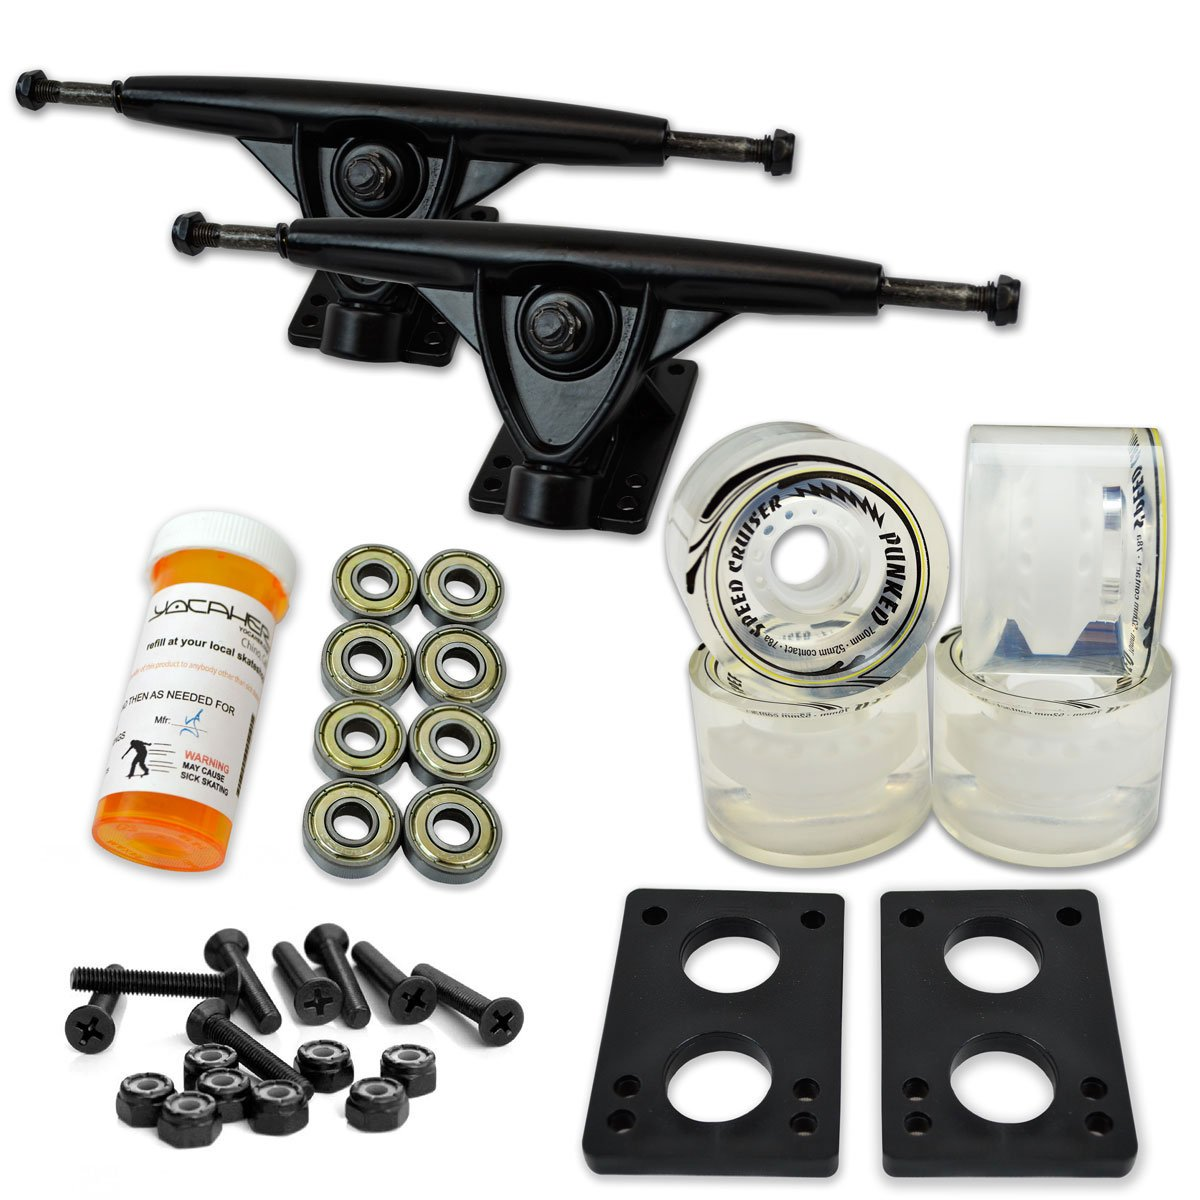 Yocaher LONGBOARD Skateboard TRUCKS COMBO set w/ 71mm WHEELS + 9.675'' Polished/Black trucks Package, Gel Clear Wheel, Black Trucks by Yocaher